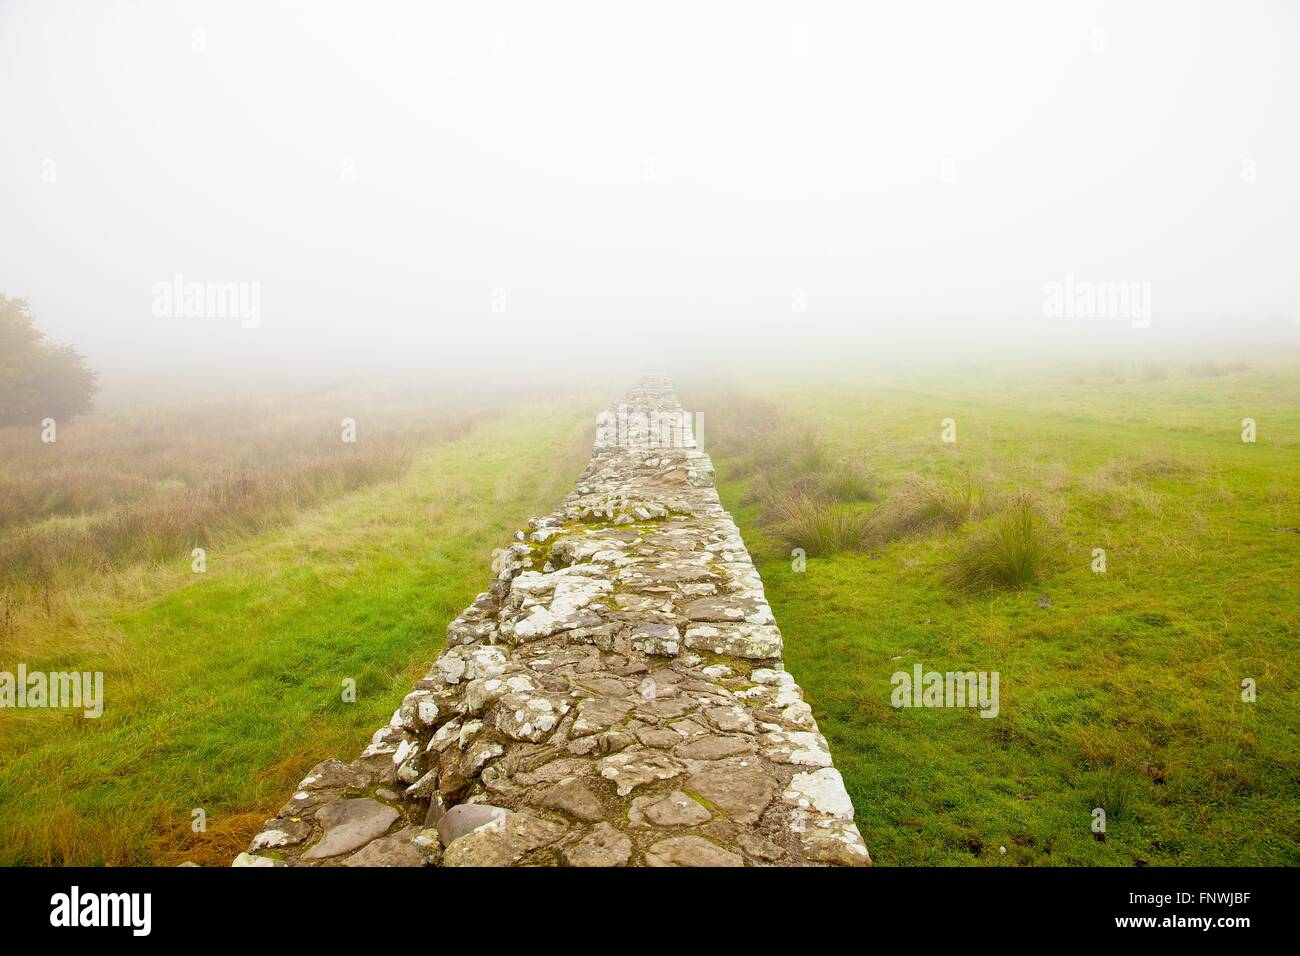 Hadrian's Wall. Fog enveloped. Birdoswald, World Heritage Site, Cumbria, England, United Kingdom. - Stock Image